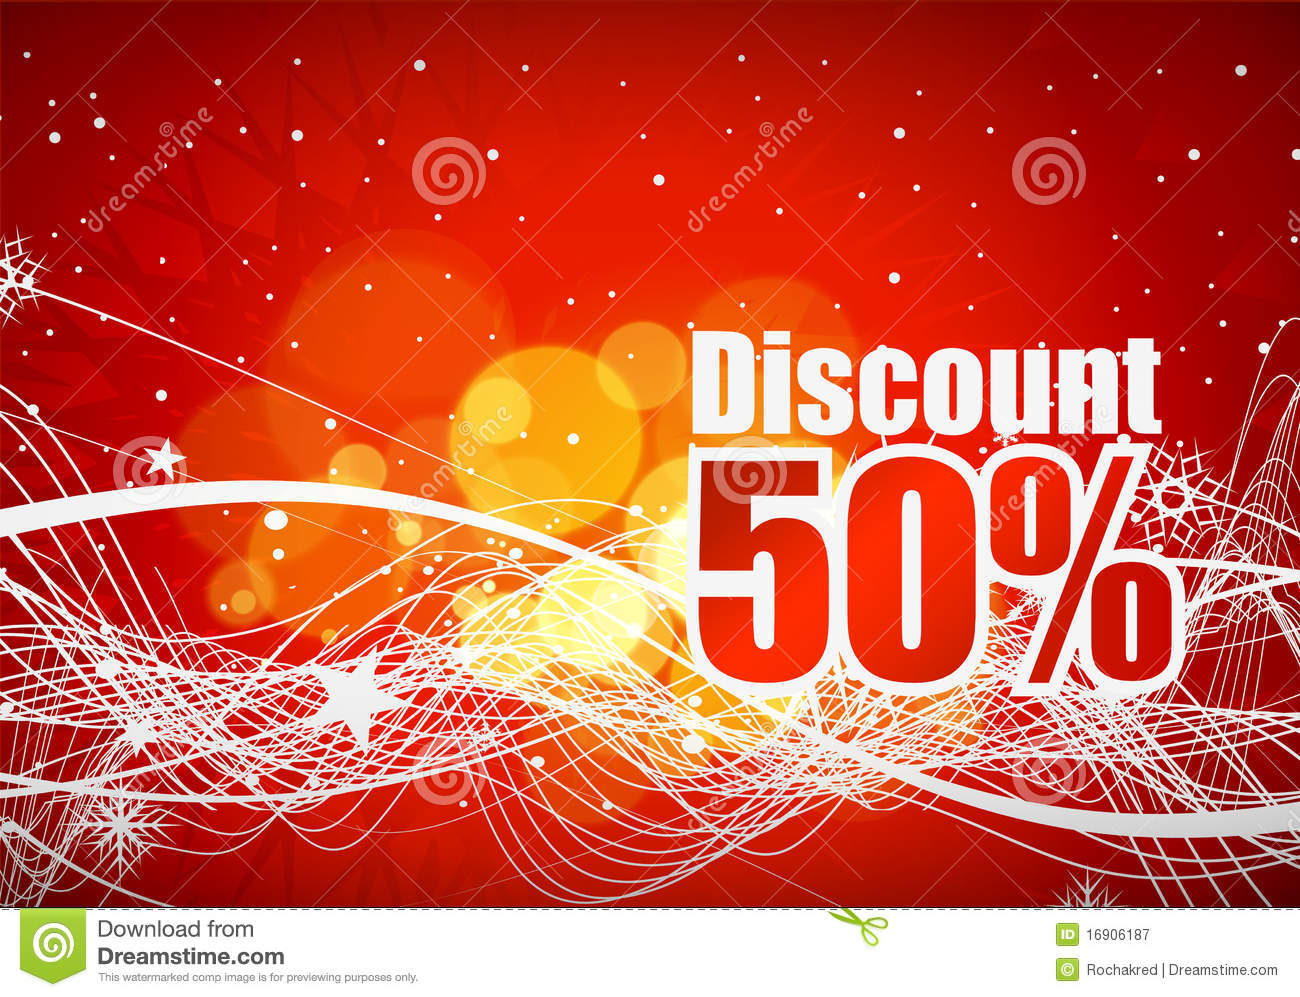 Design of discount card - Discount Card Design Royalty Free Stock Photography